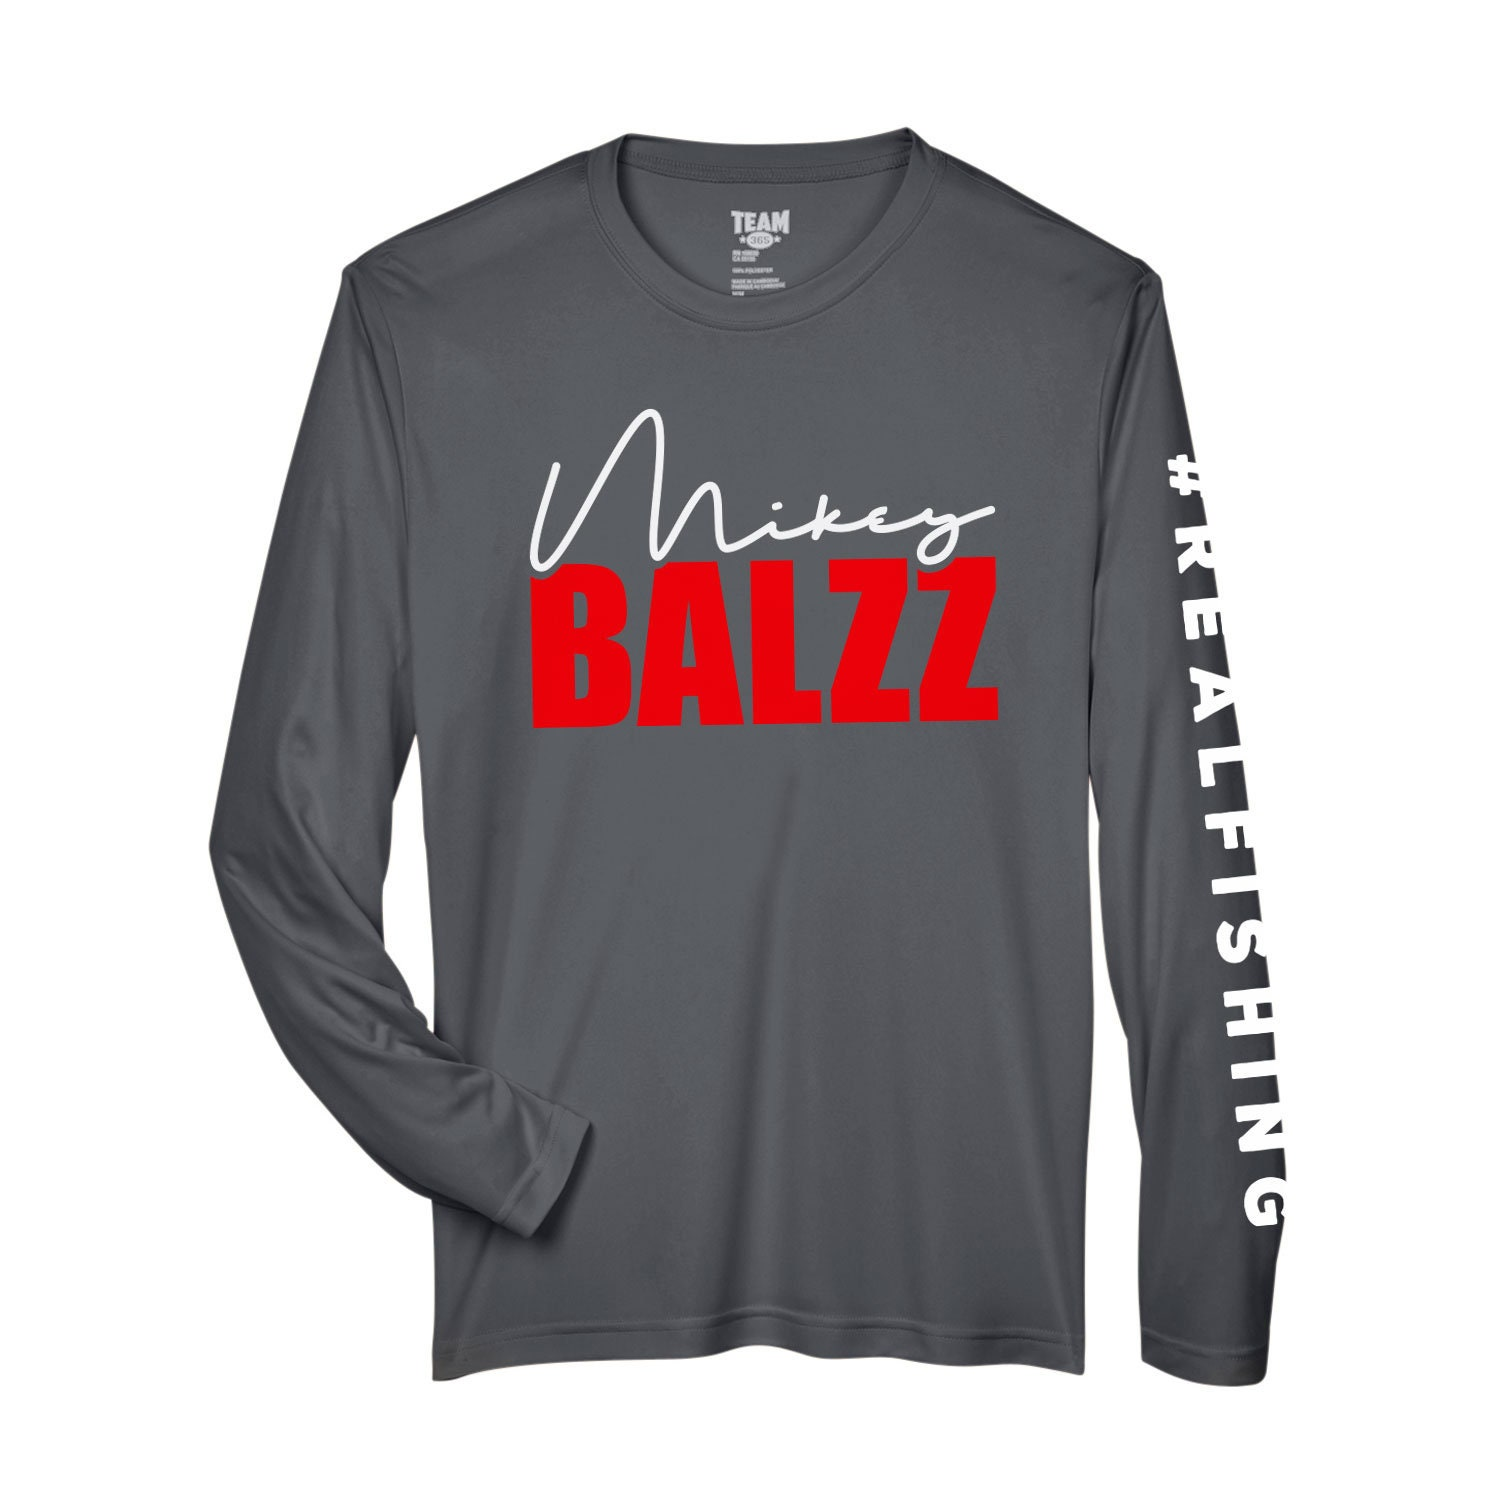 e693f9a0 Mikey Balzz - Moisture-Wicking and UV Protection - Long Sleeve Shirt